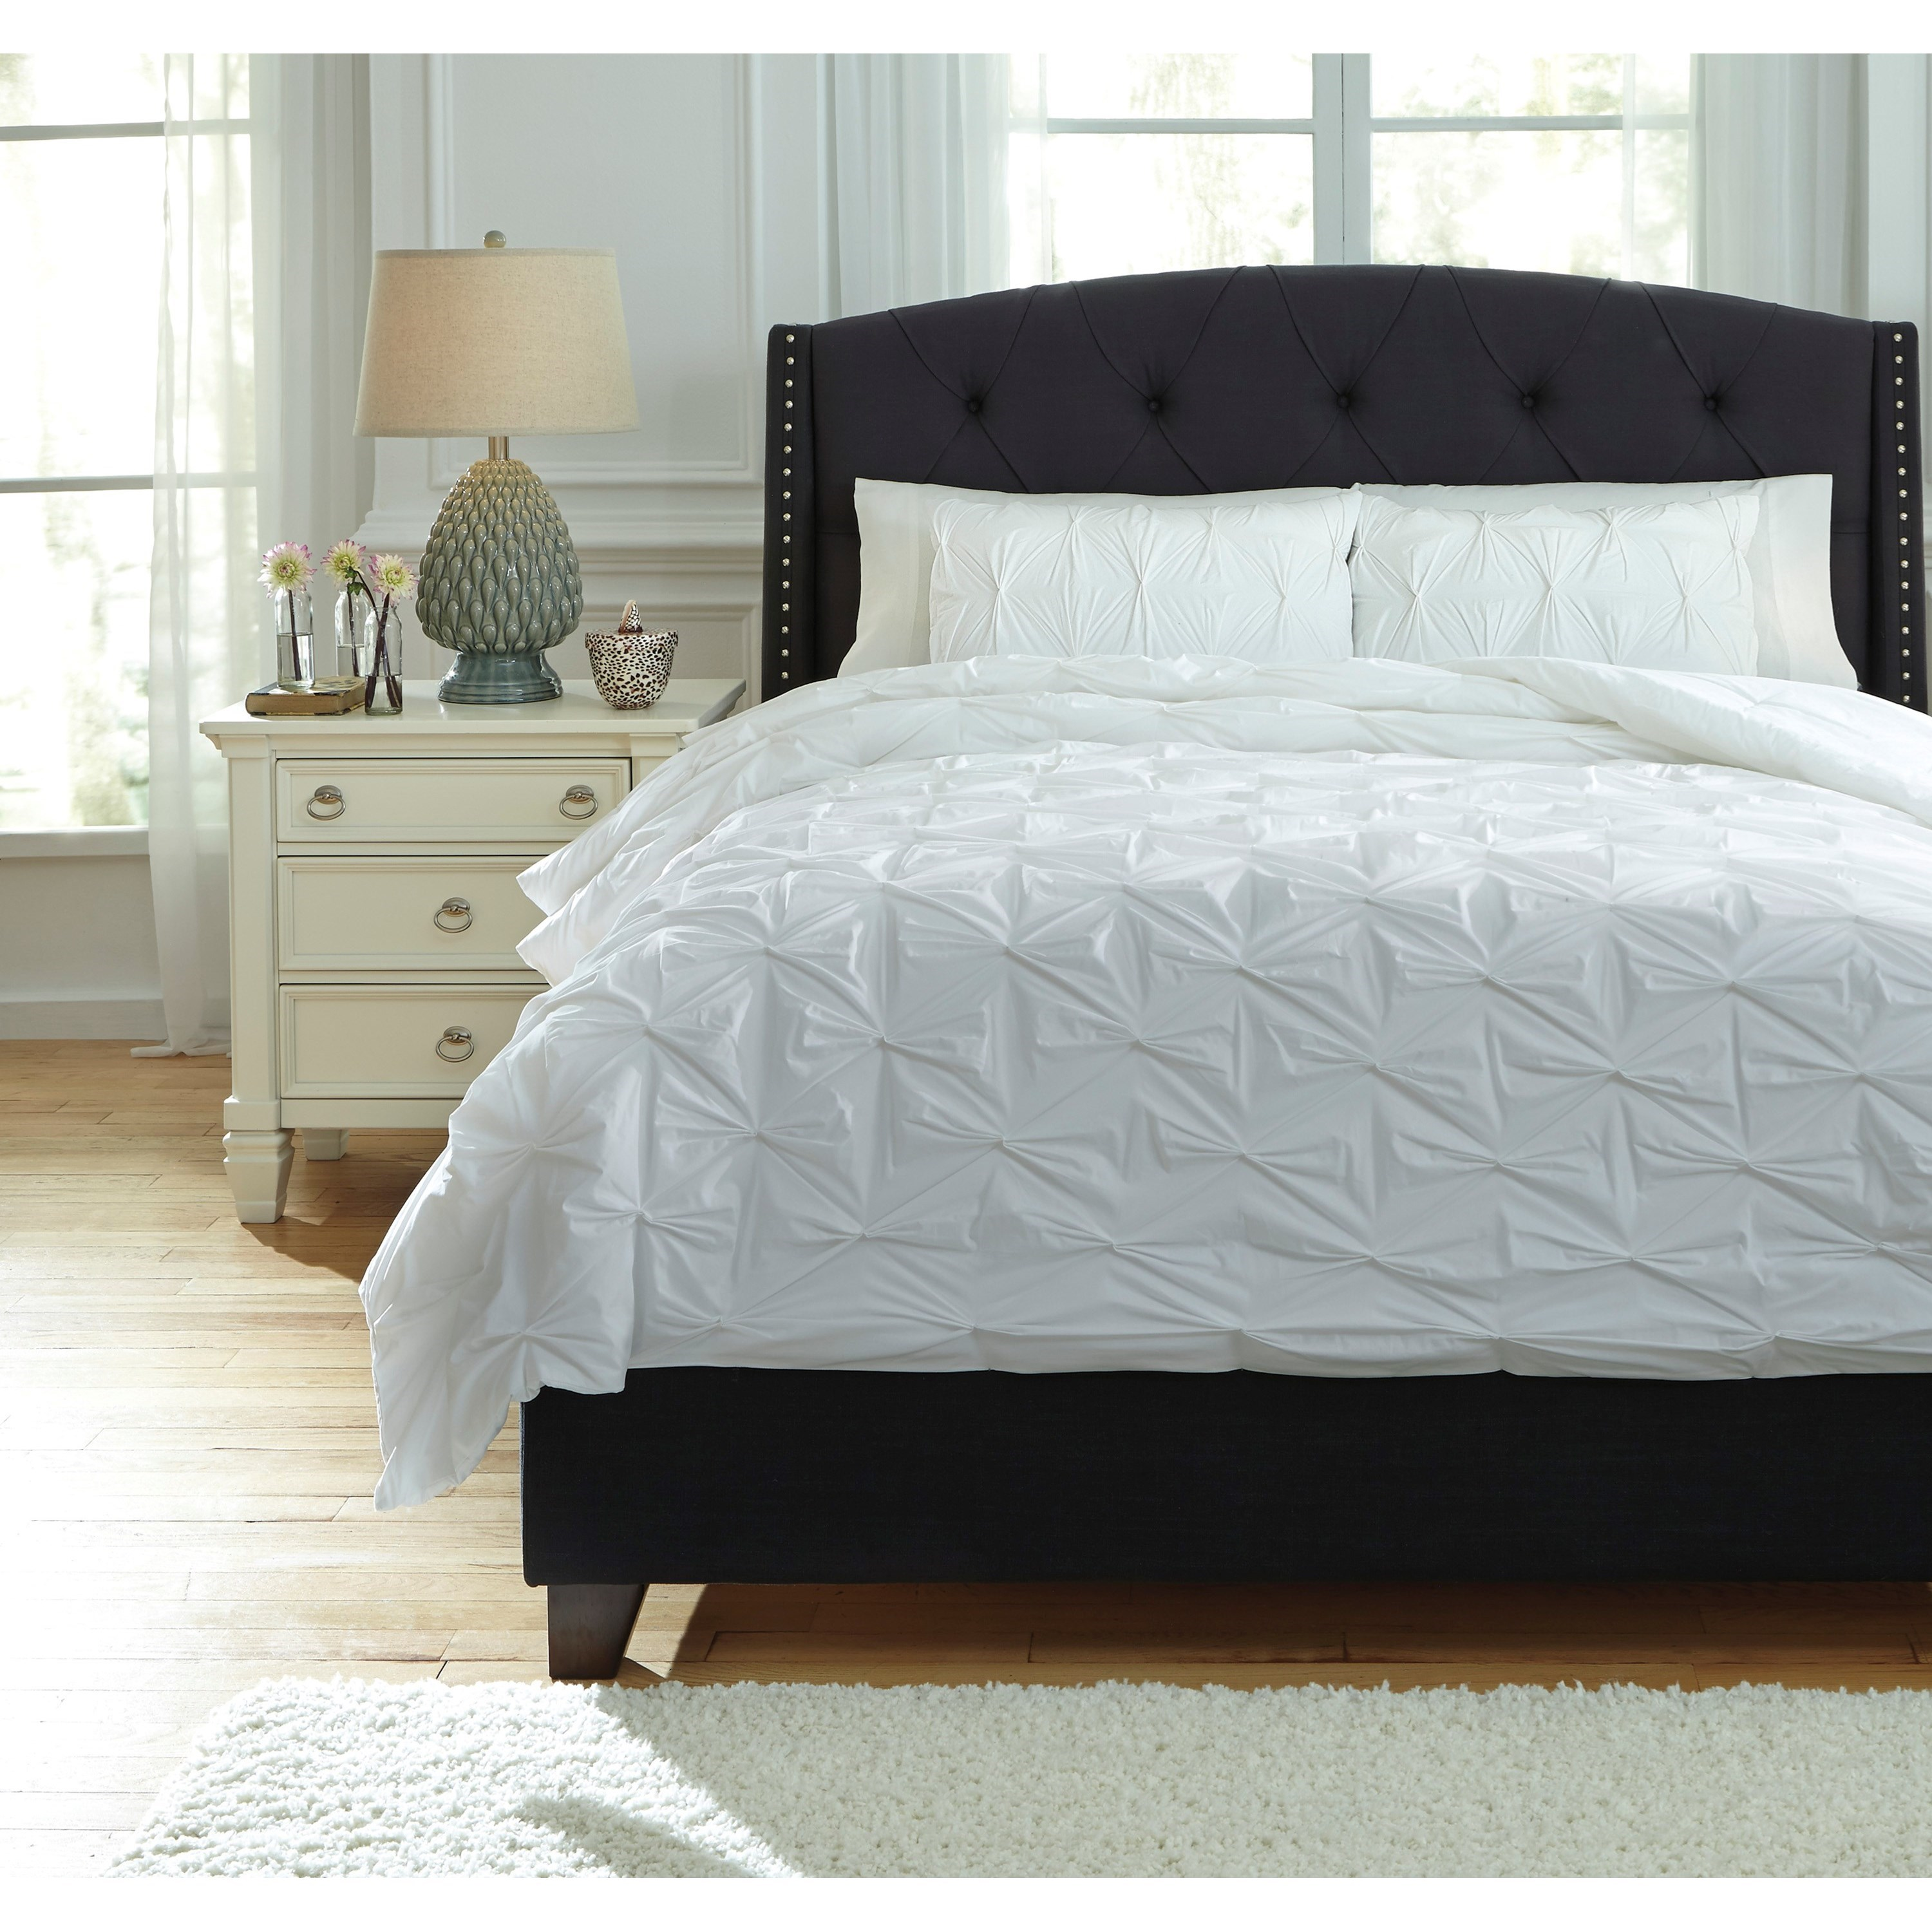 White Duvet Cover Queen Bedding Sets Queen Rimy White Comforter Set By Trendz At Ruby Gordon Home